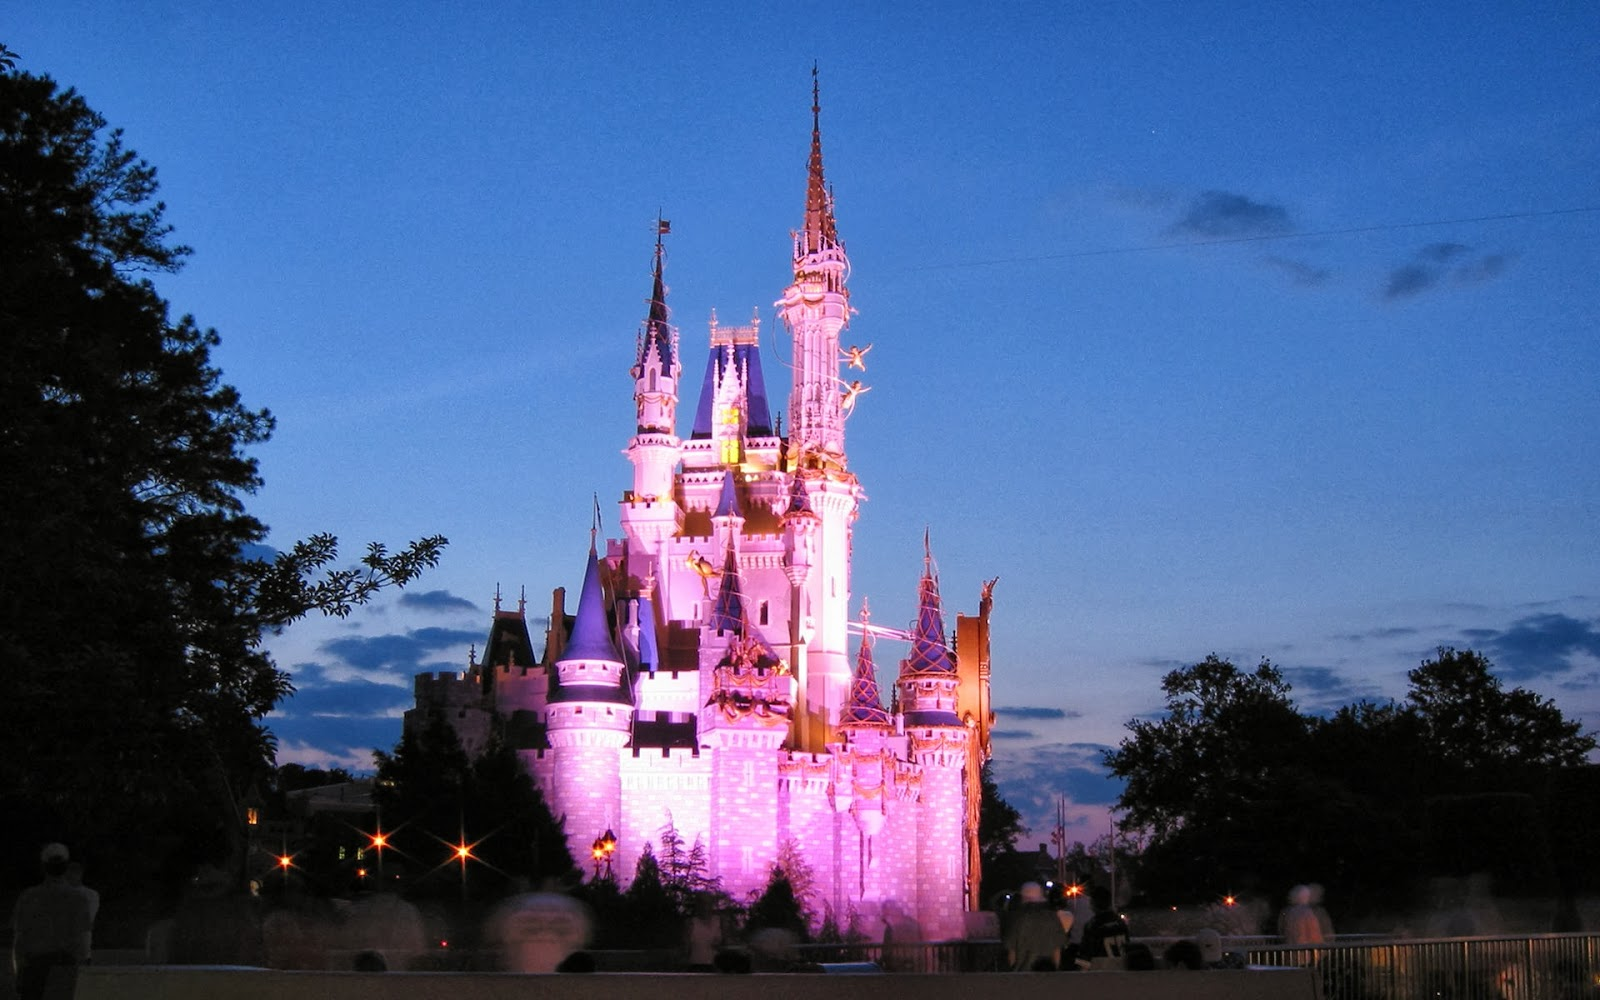 Disney Castle HD Wallpapers Download HD WALLPAERS 4U FREE 1600x1000